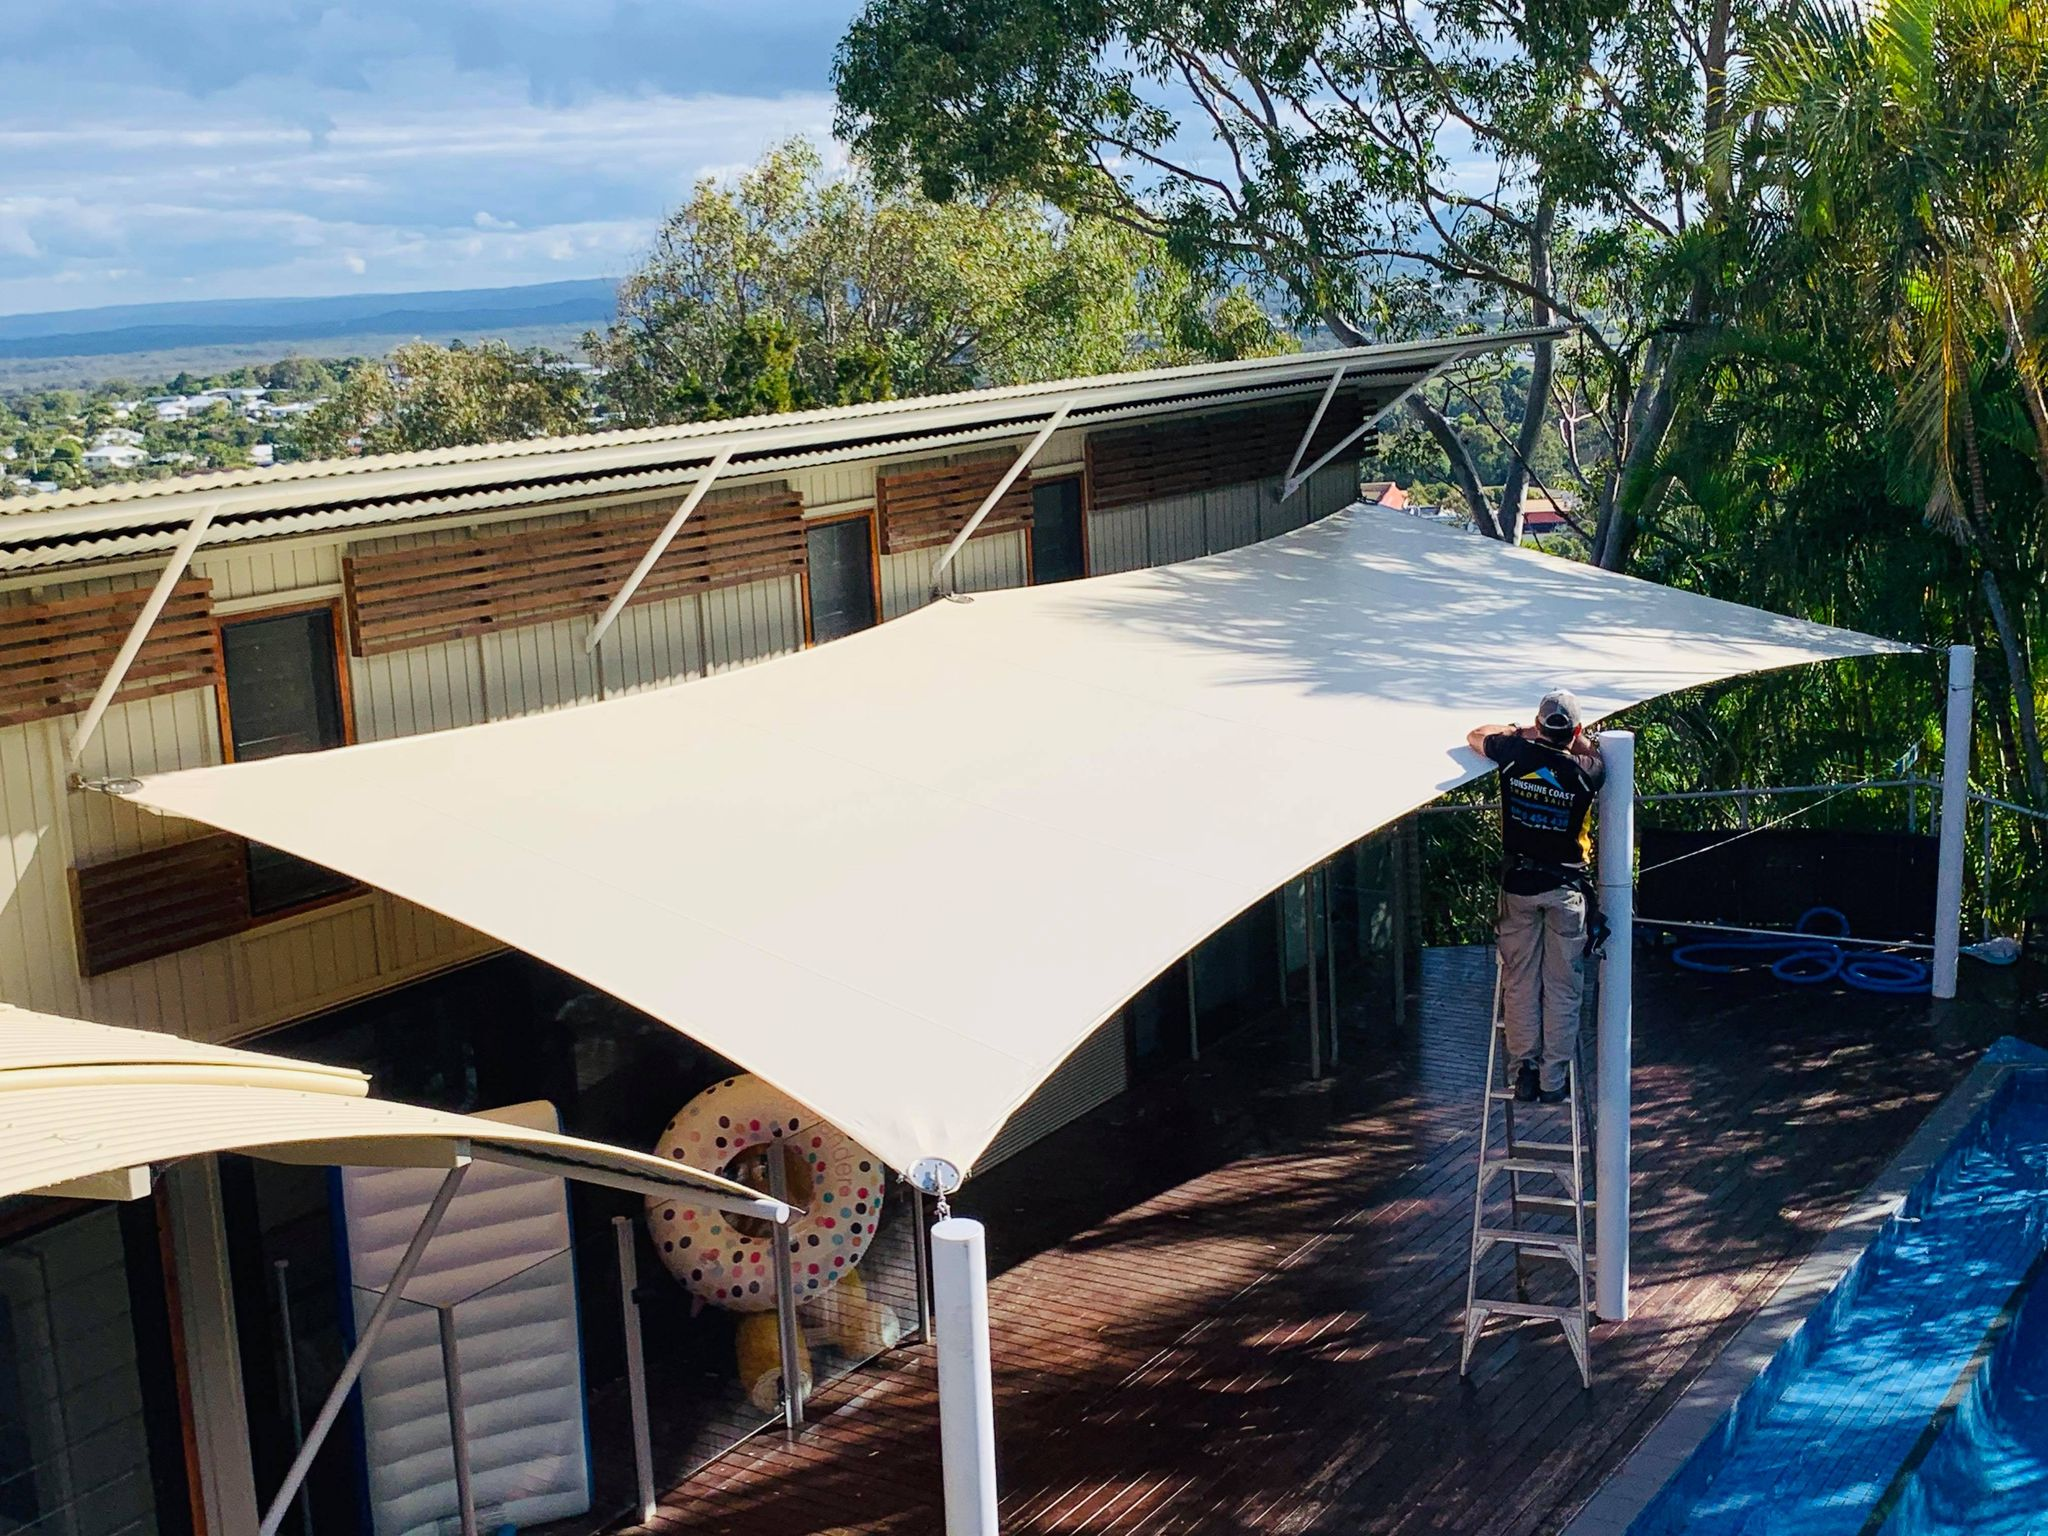 Noosa Heads Waterproof Sail